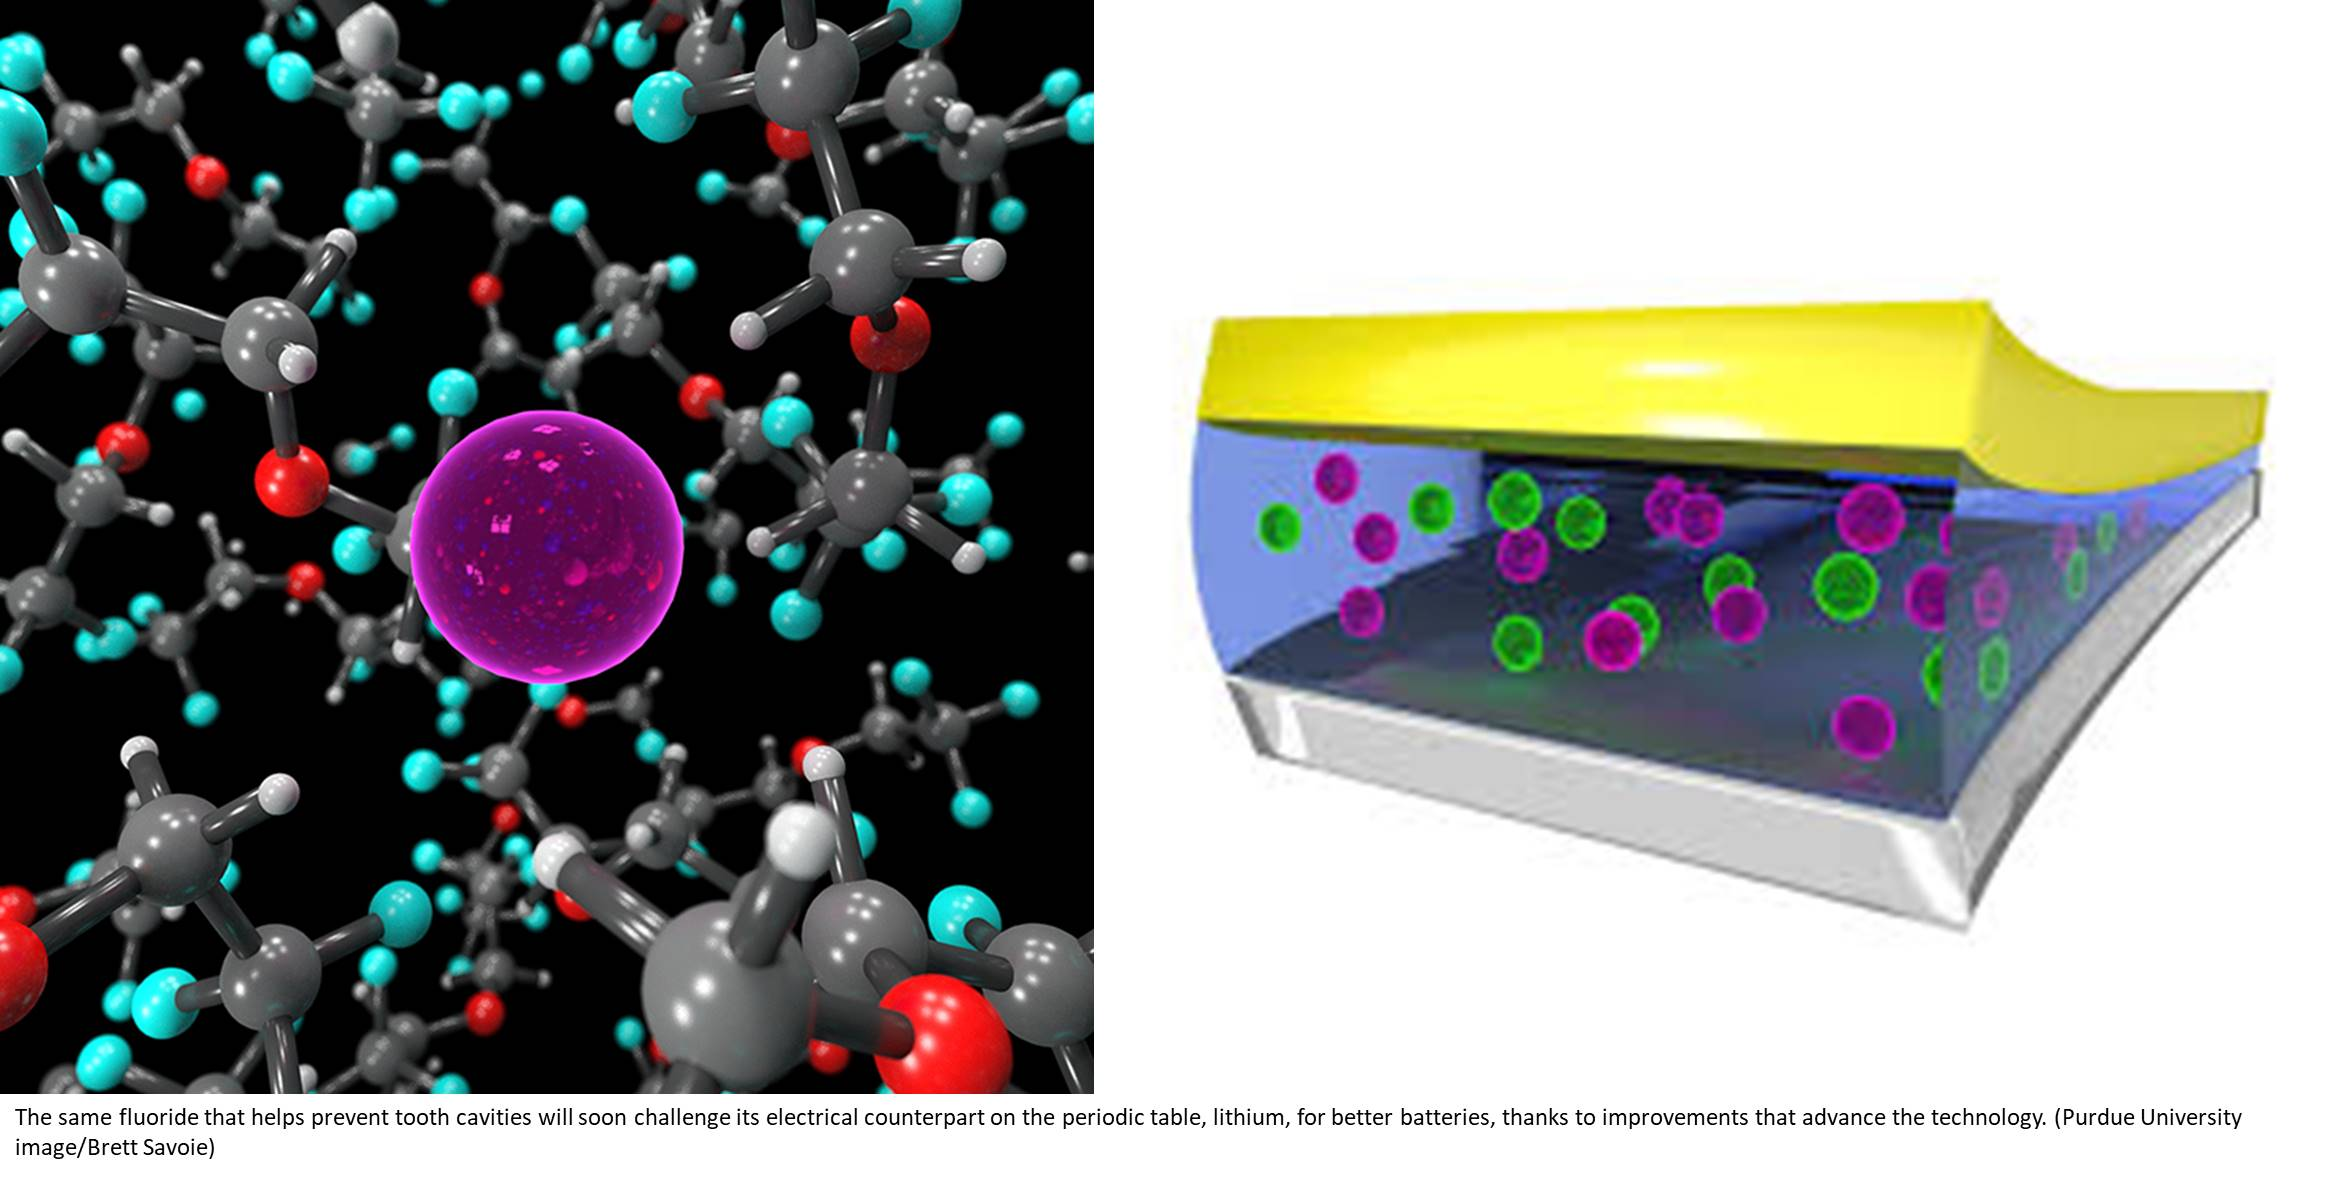 Fluoride and lithium, compete for higher energy batteries